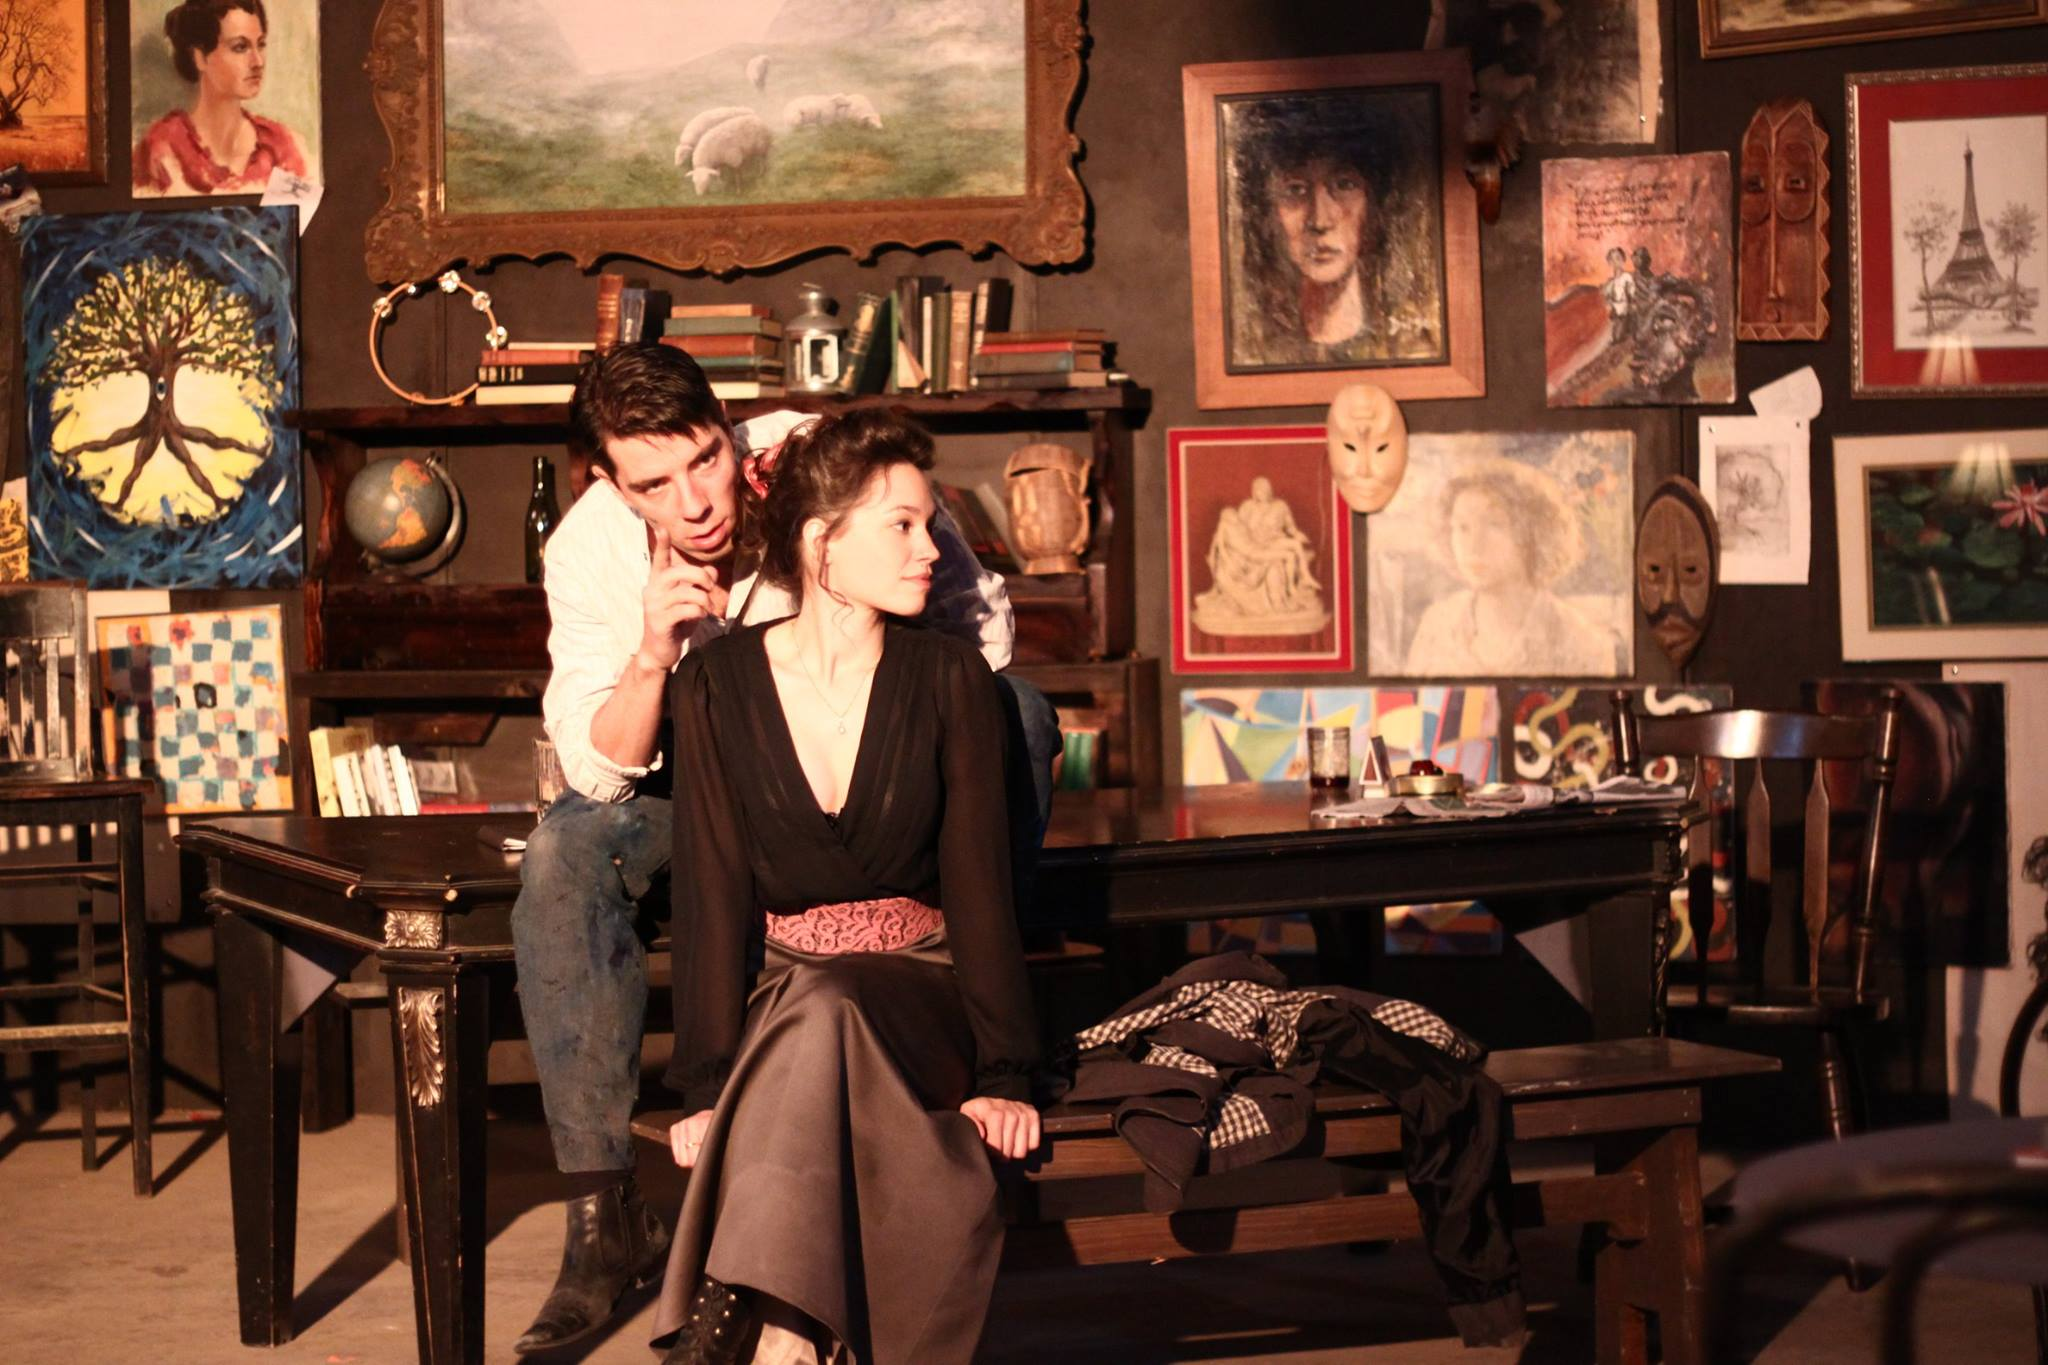 Picasso at the Lapin Agile